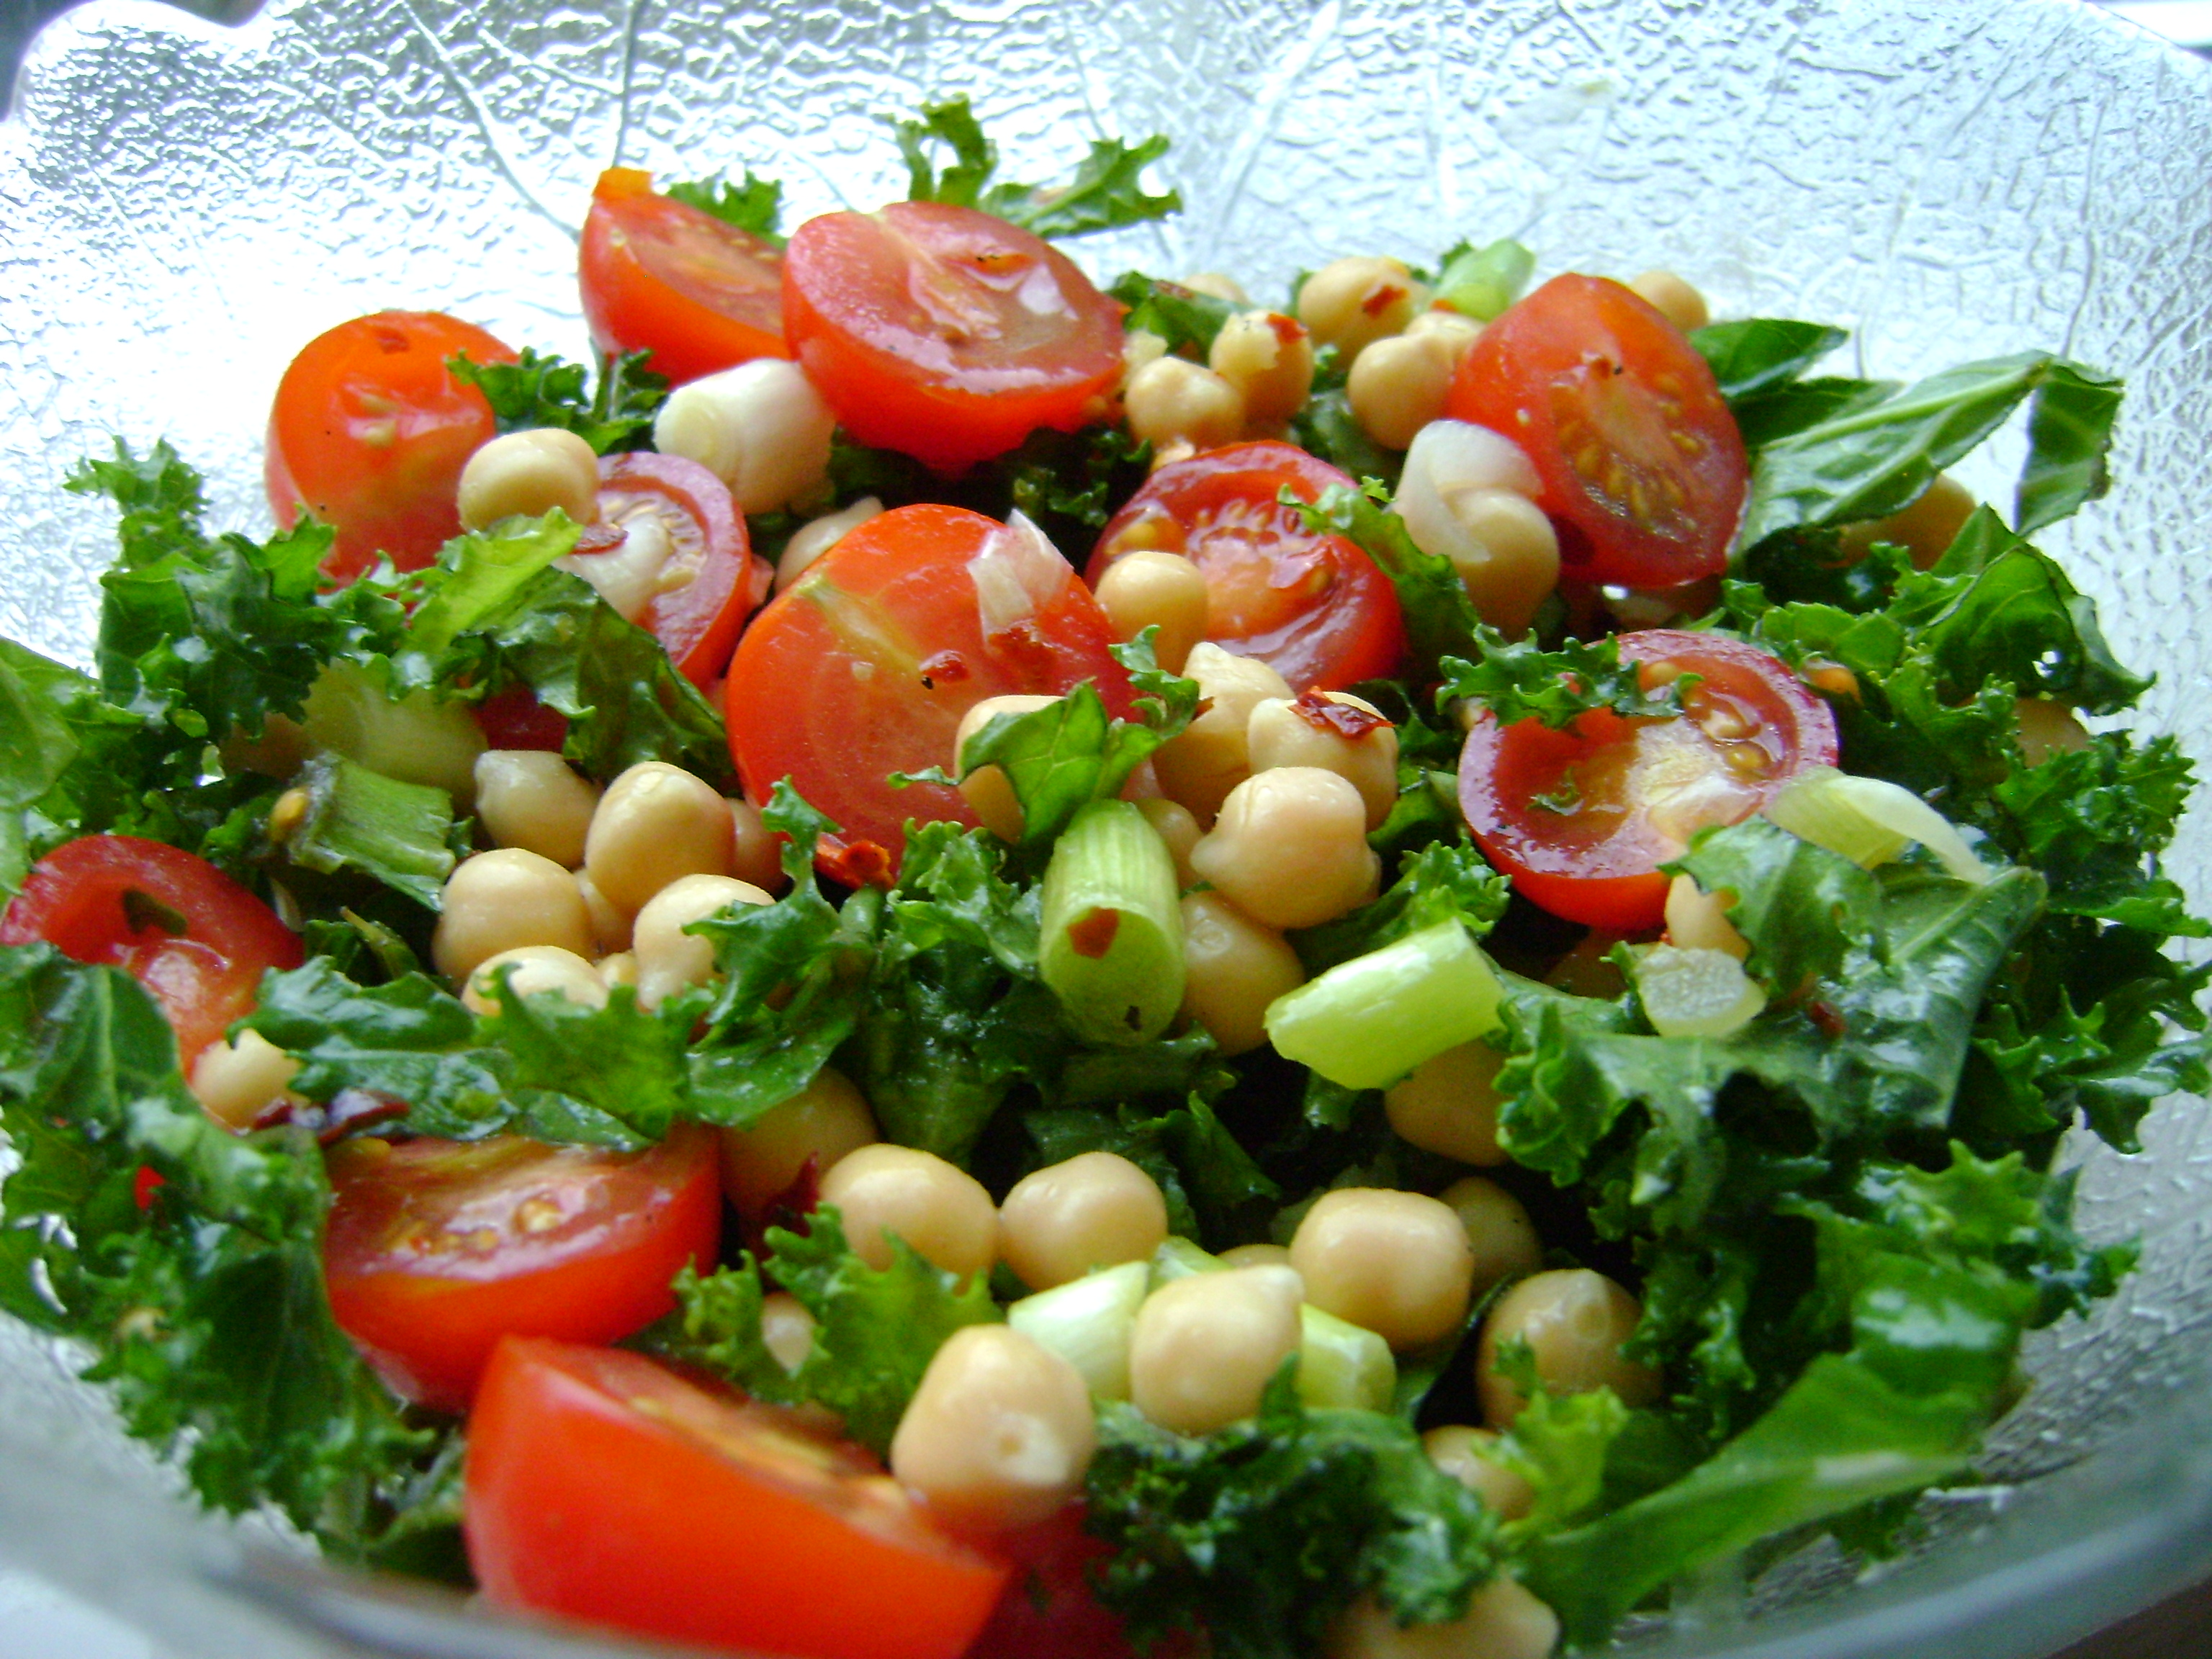 Chickpea, Tomato and Kale salad | Made by Jayne